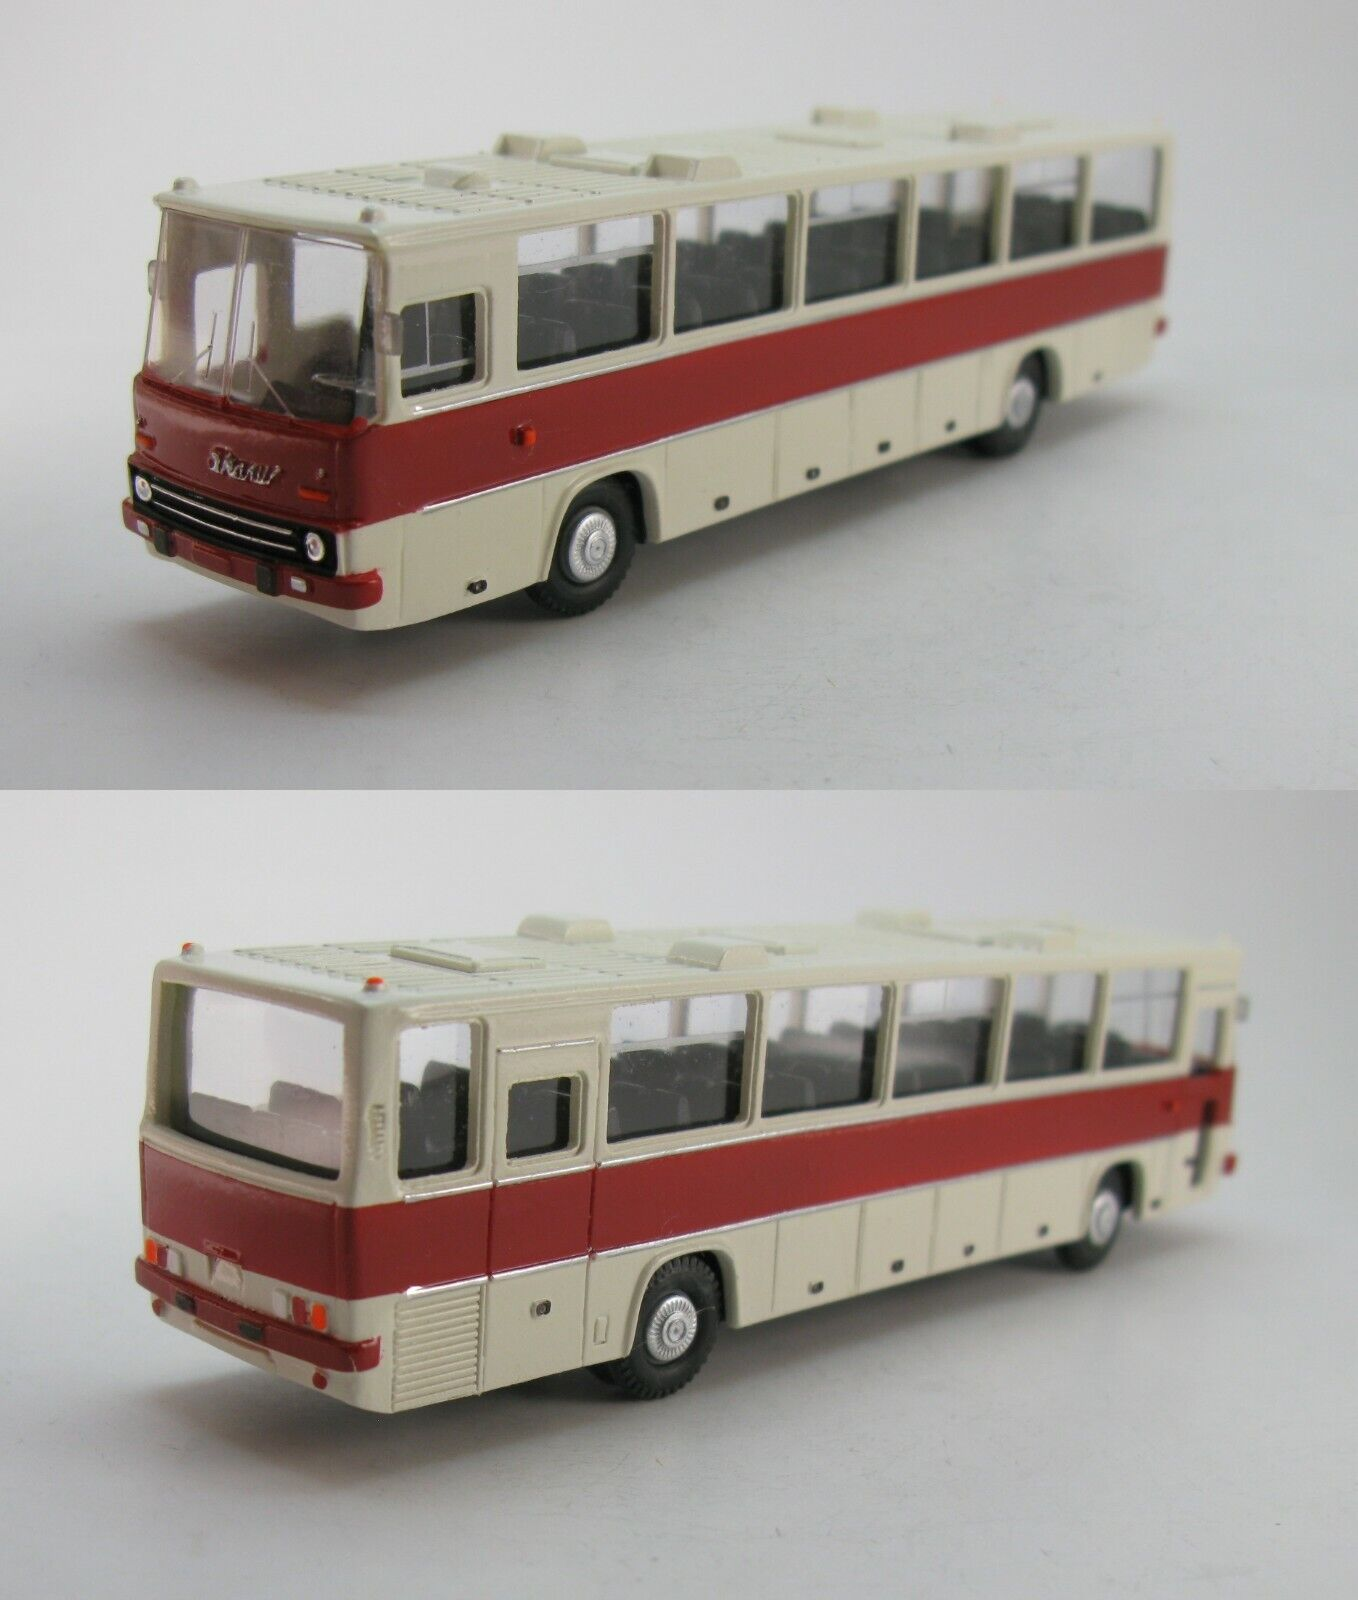 Ikarus 250.59-52 Intercity-bus rda urss - 1 87 Ho